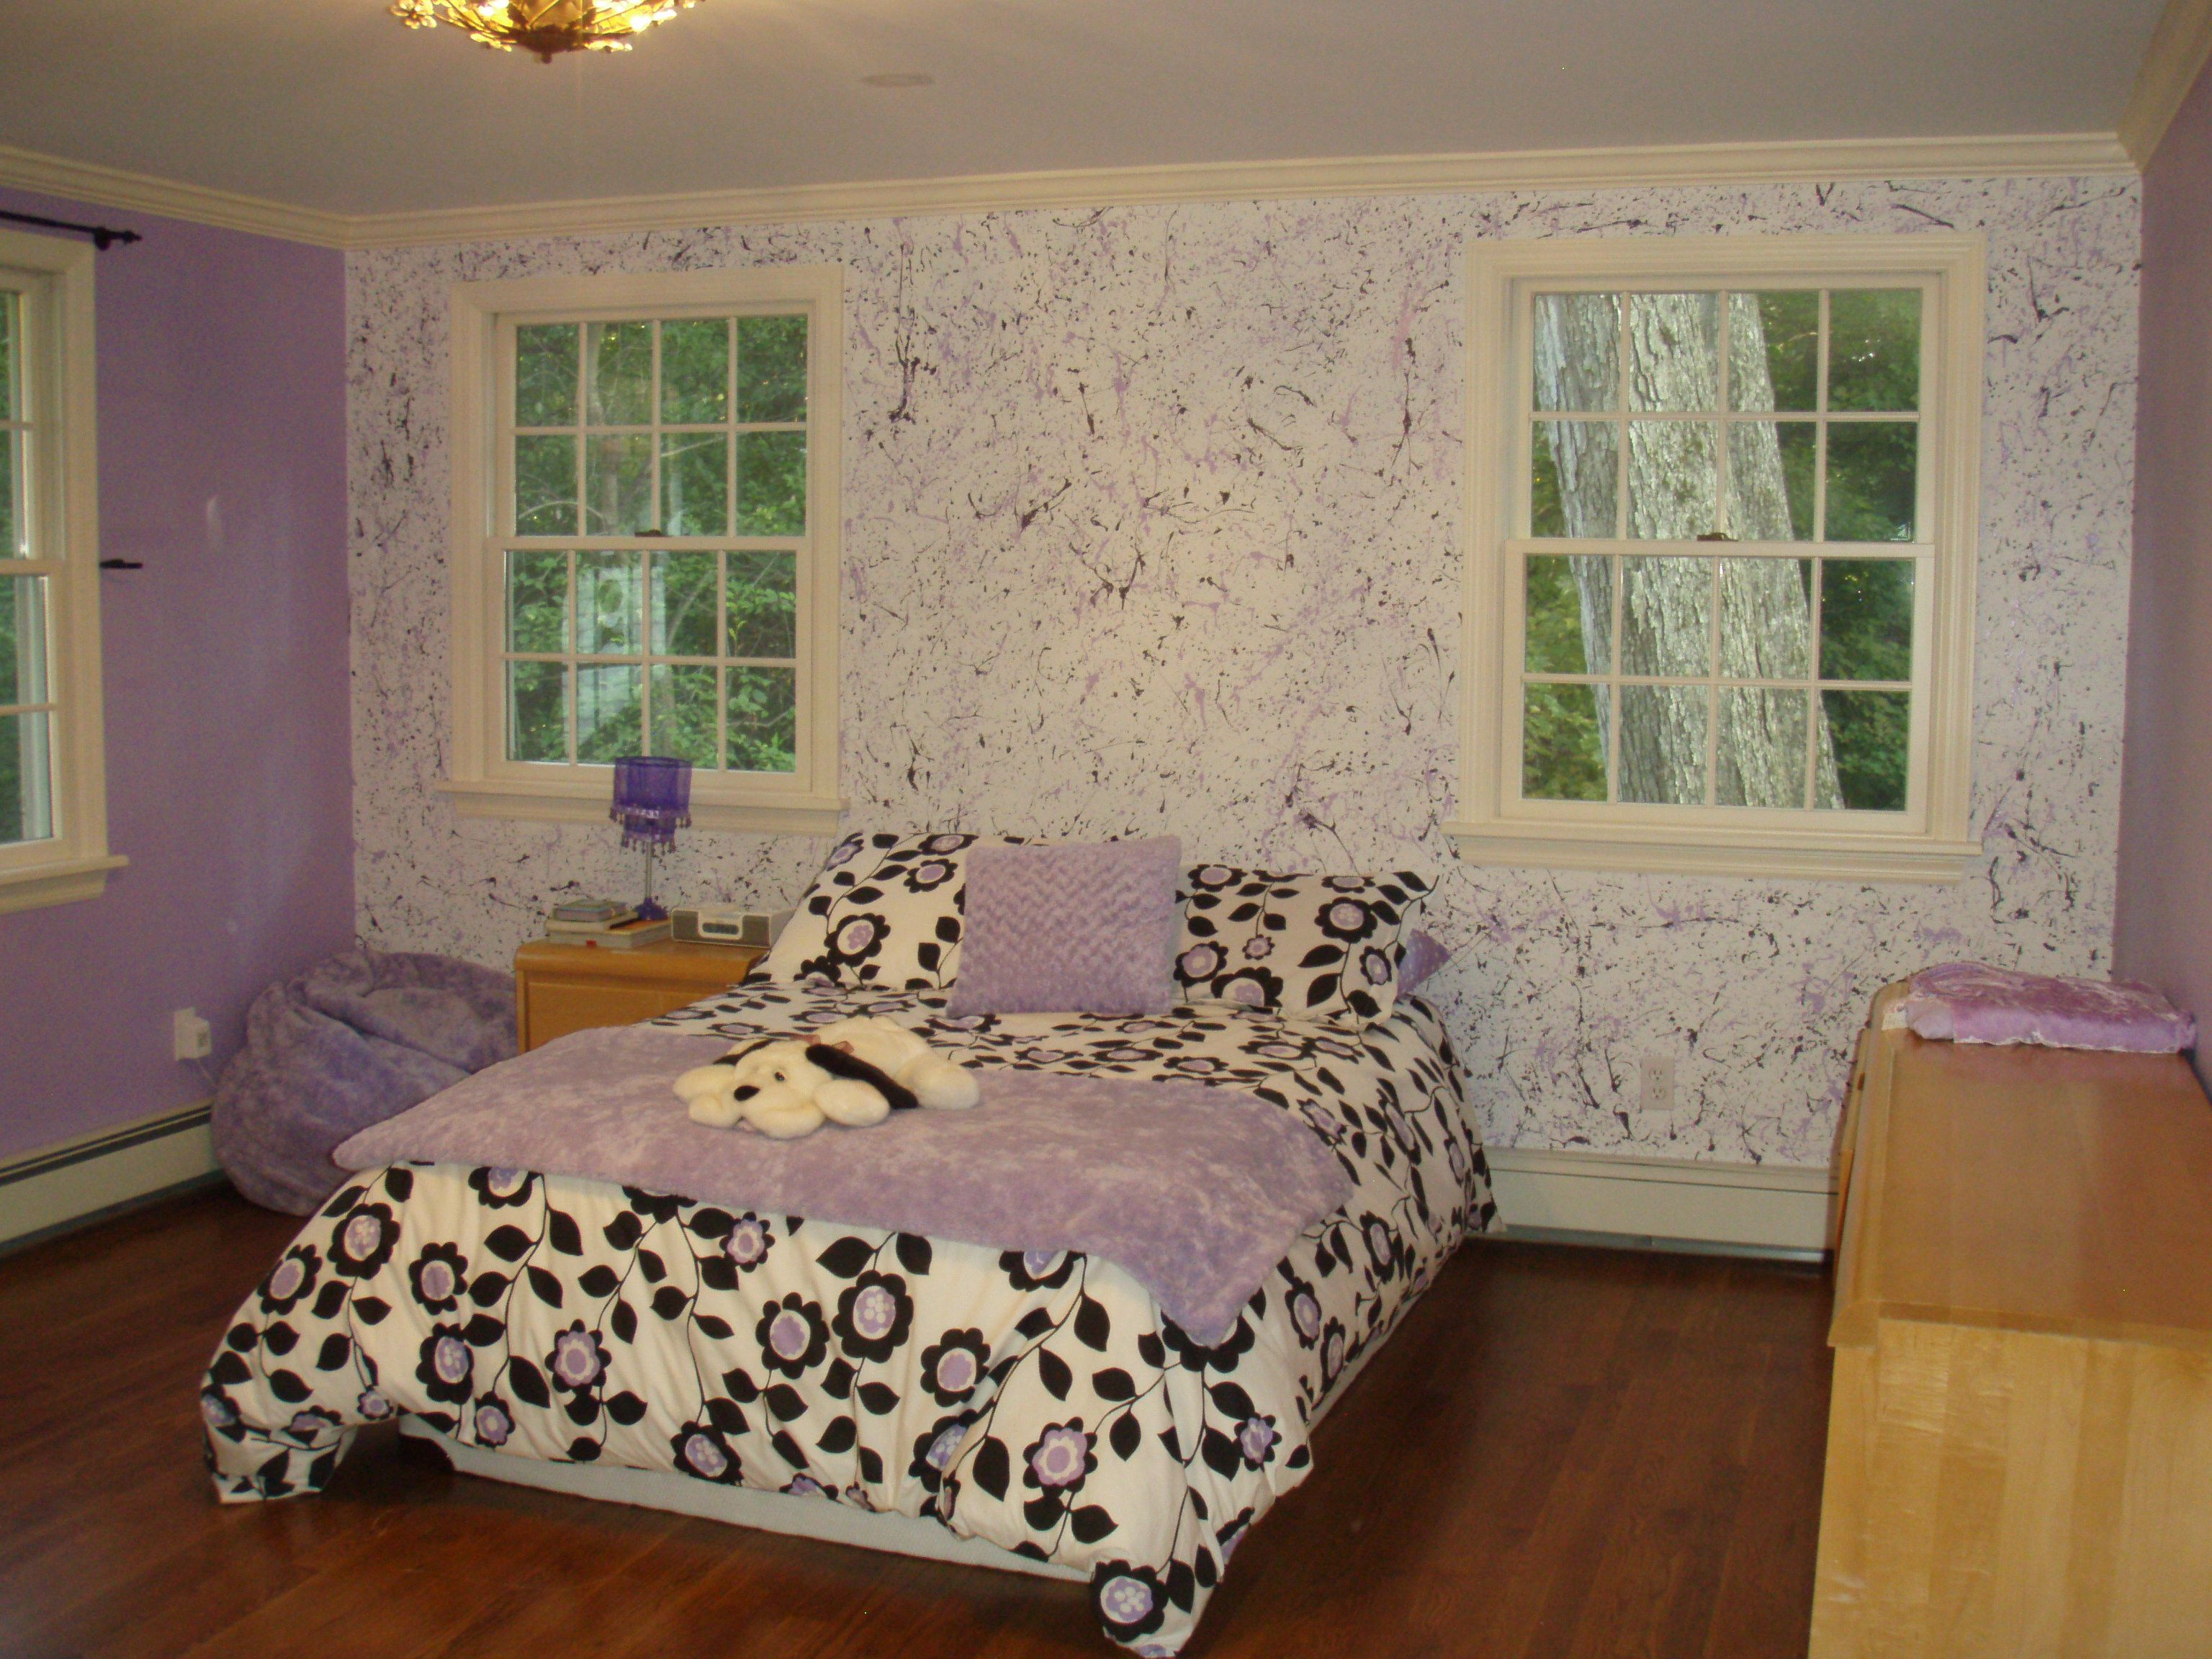 Painting Bedroom Splatter Walls In My Daughters Room Painted The Walls White Then